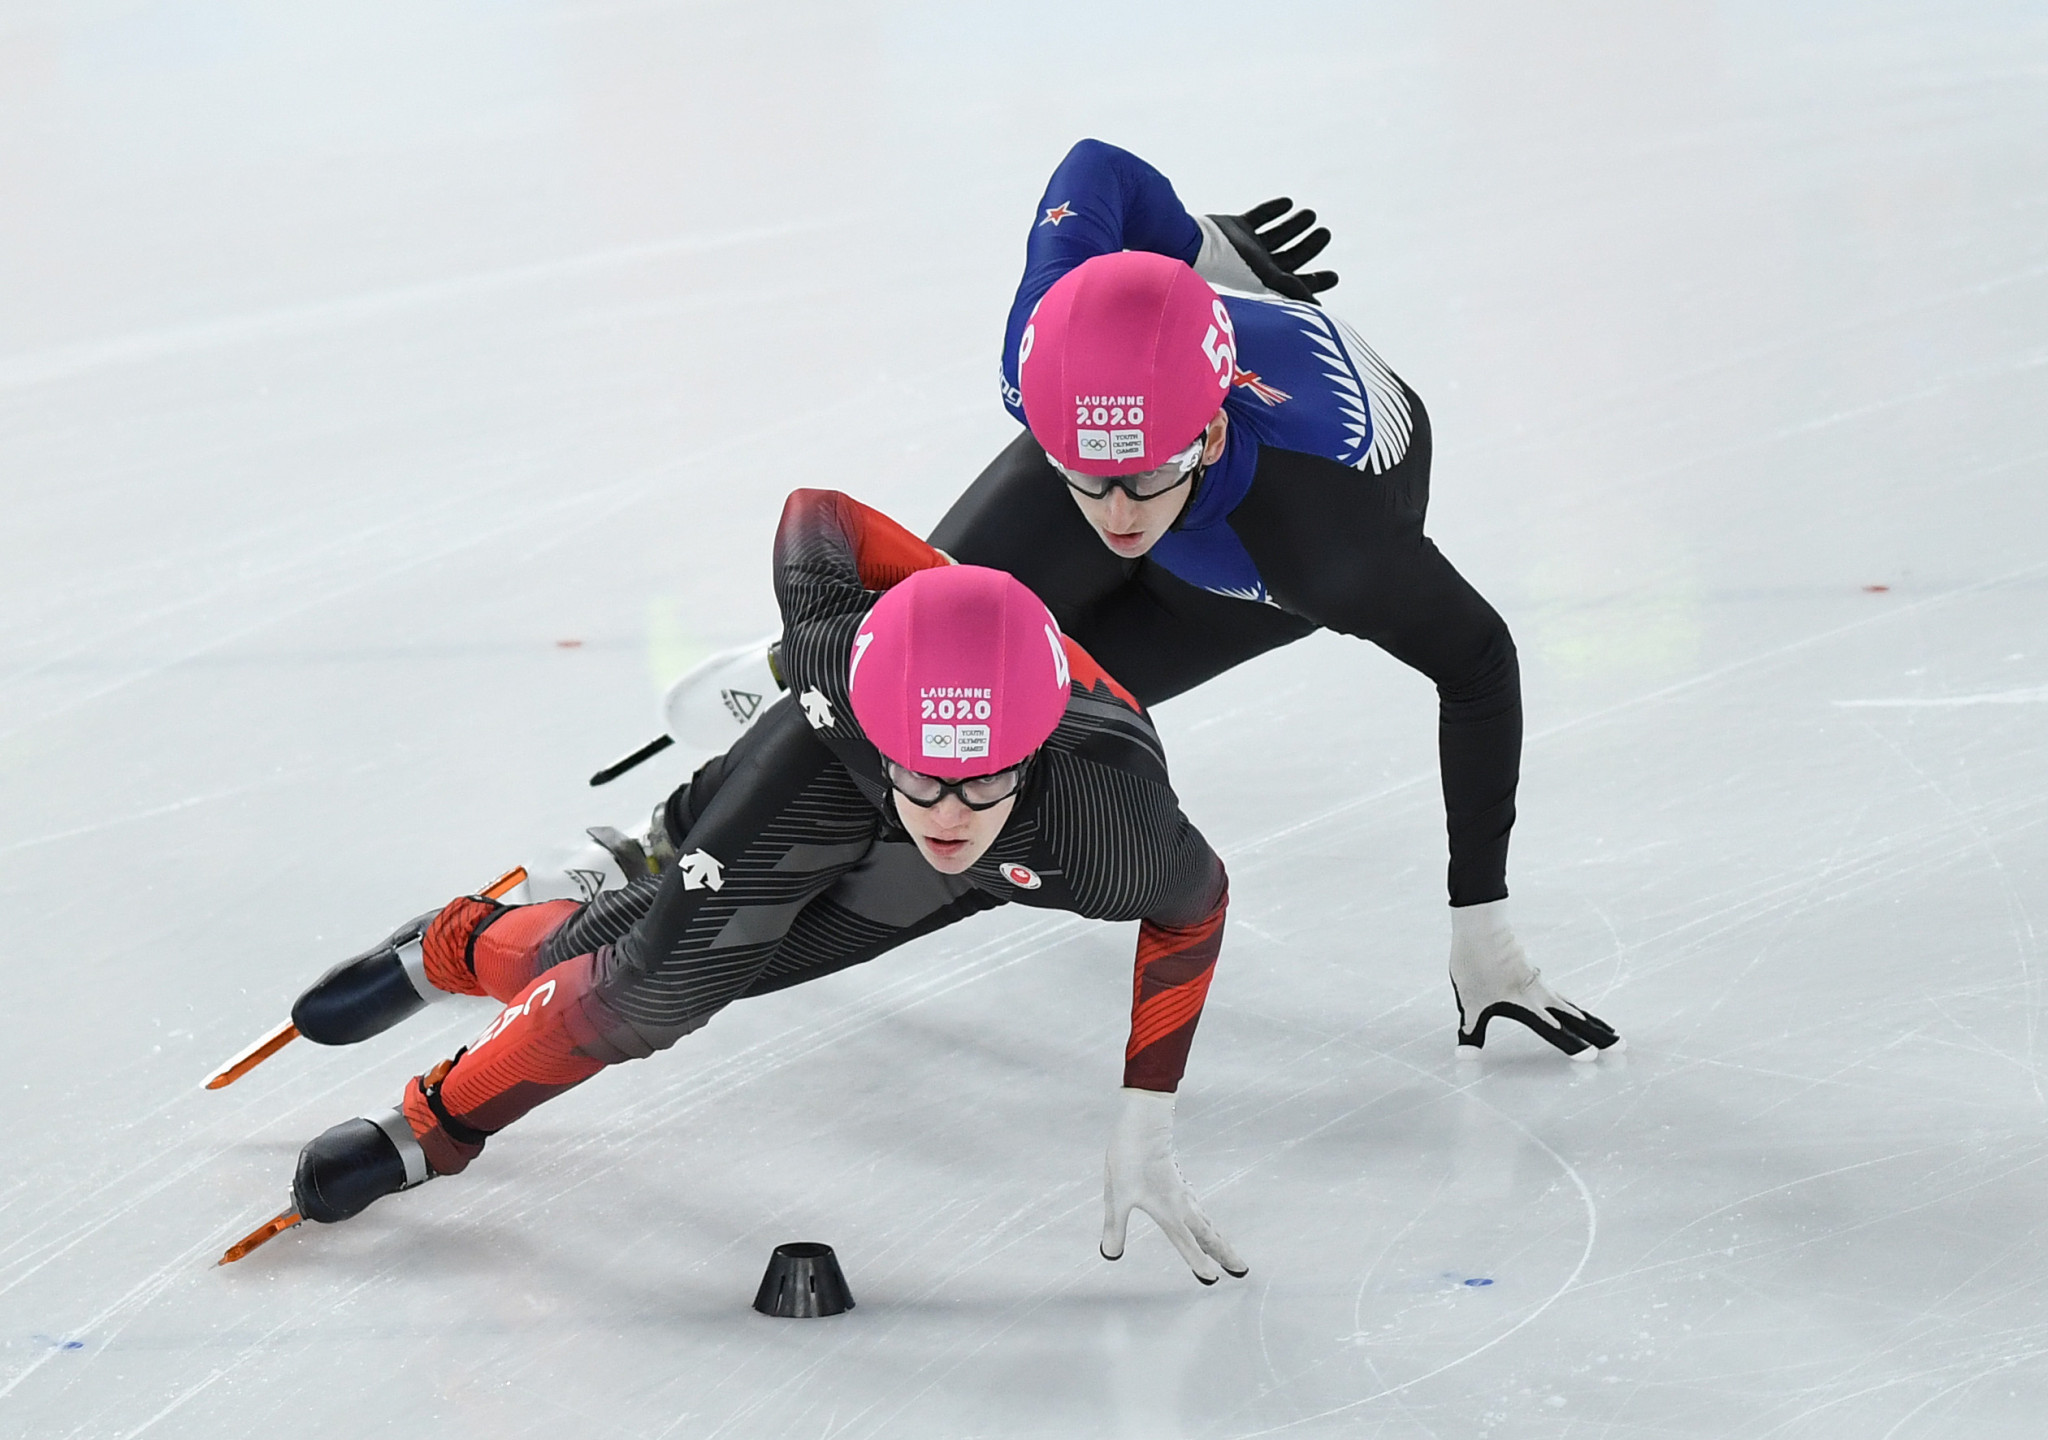 Young stars qualify for World Junior Short Track Speed Skating semi-finals